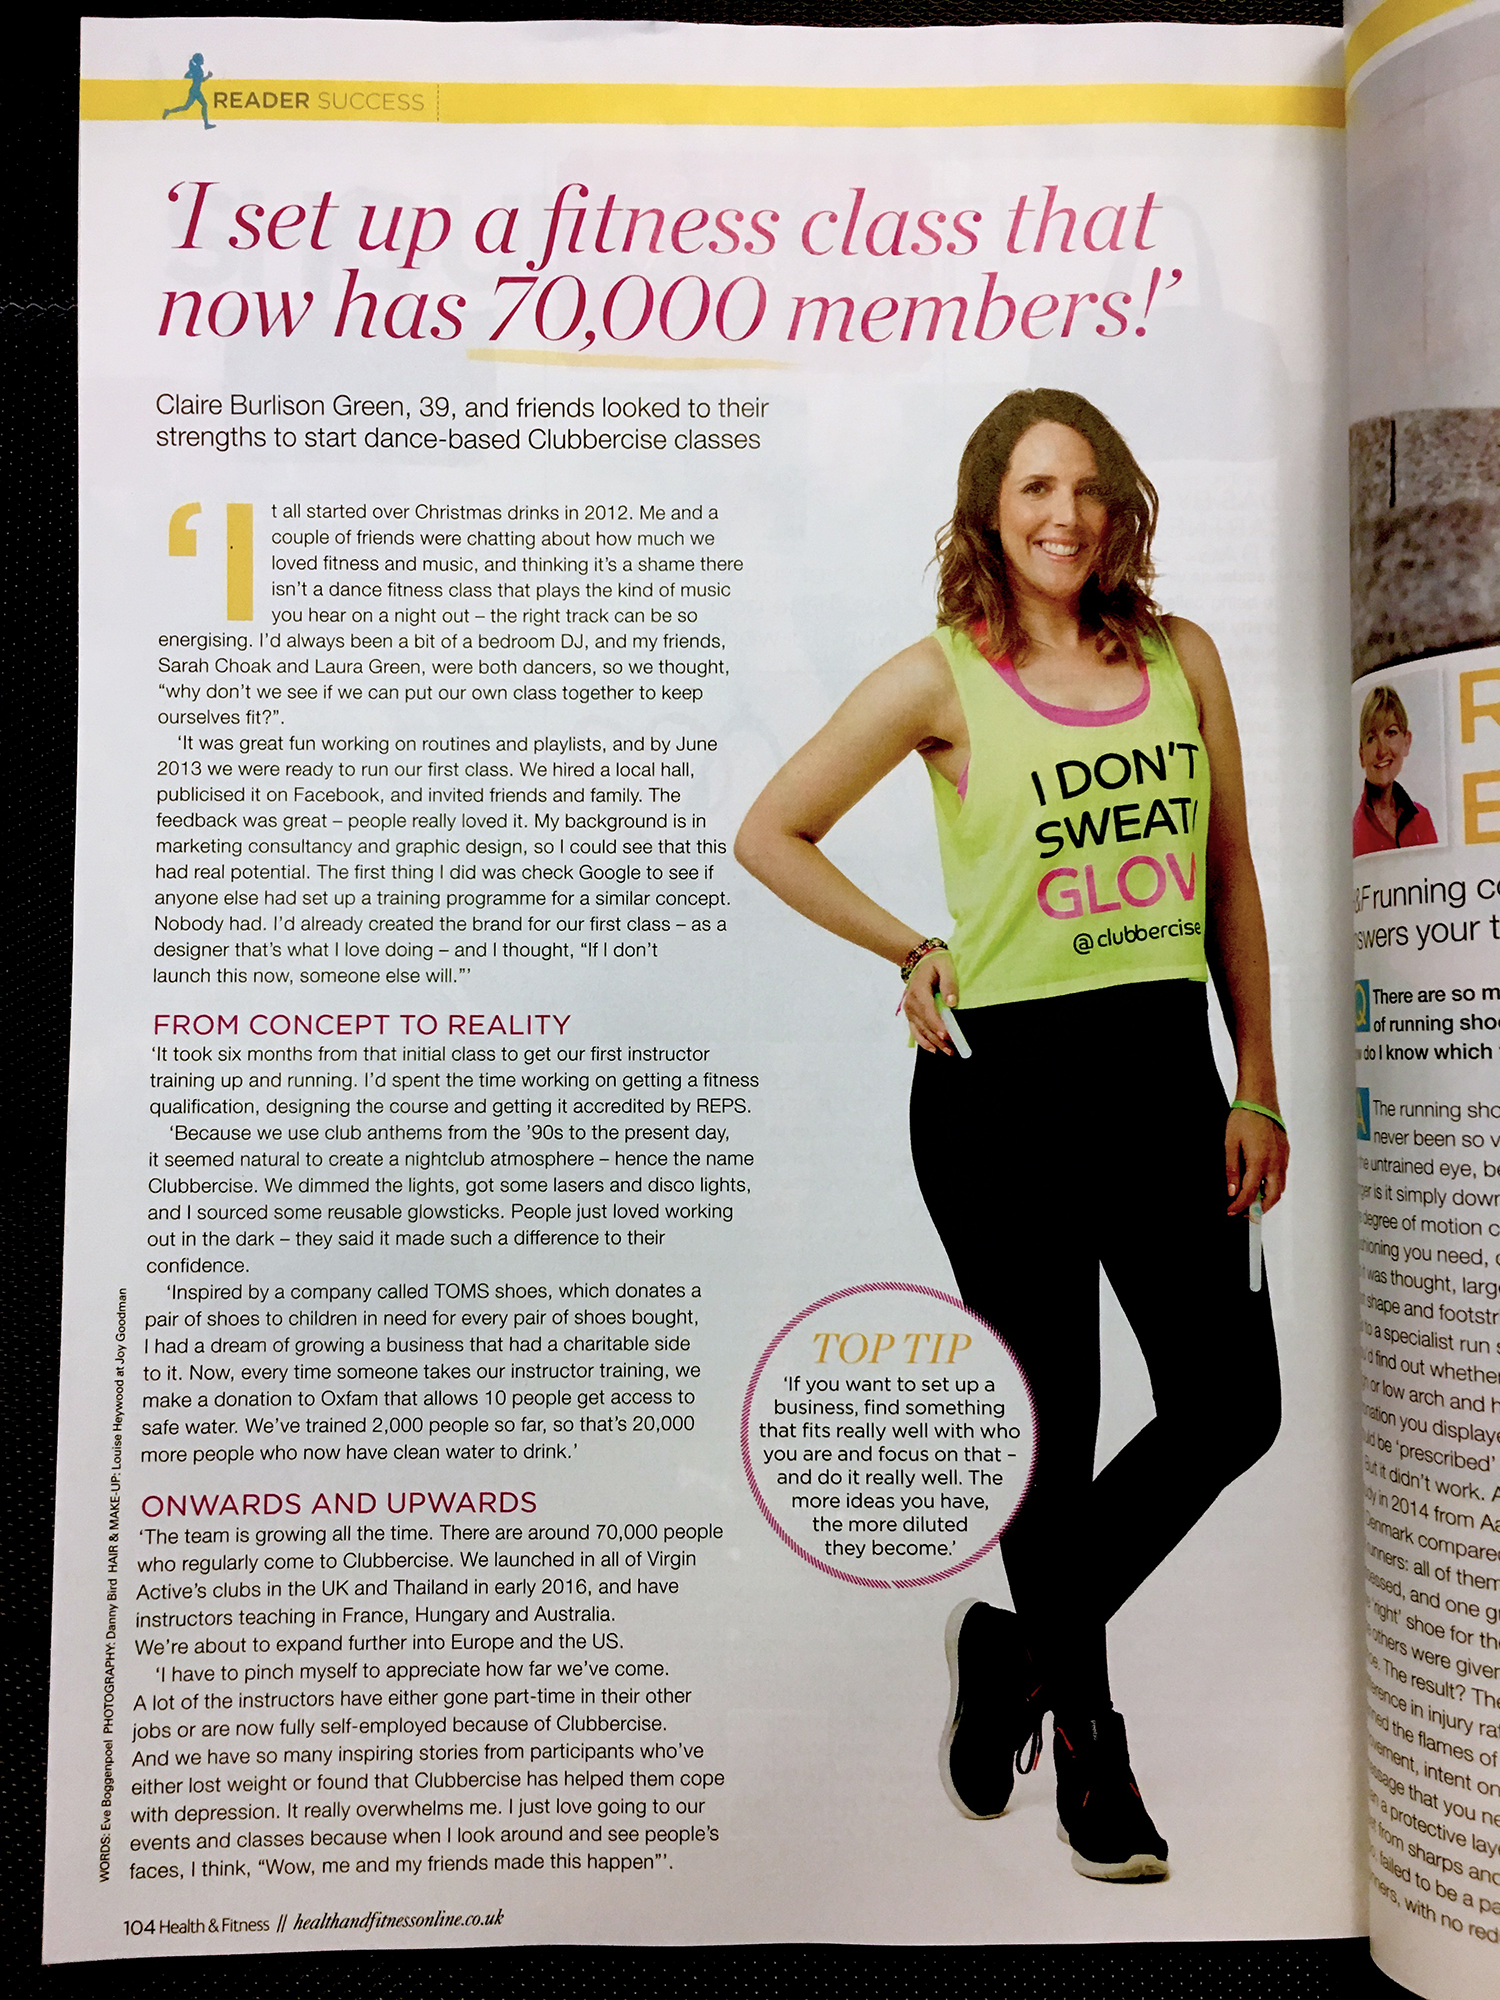 Health & Fitness magazine article